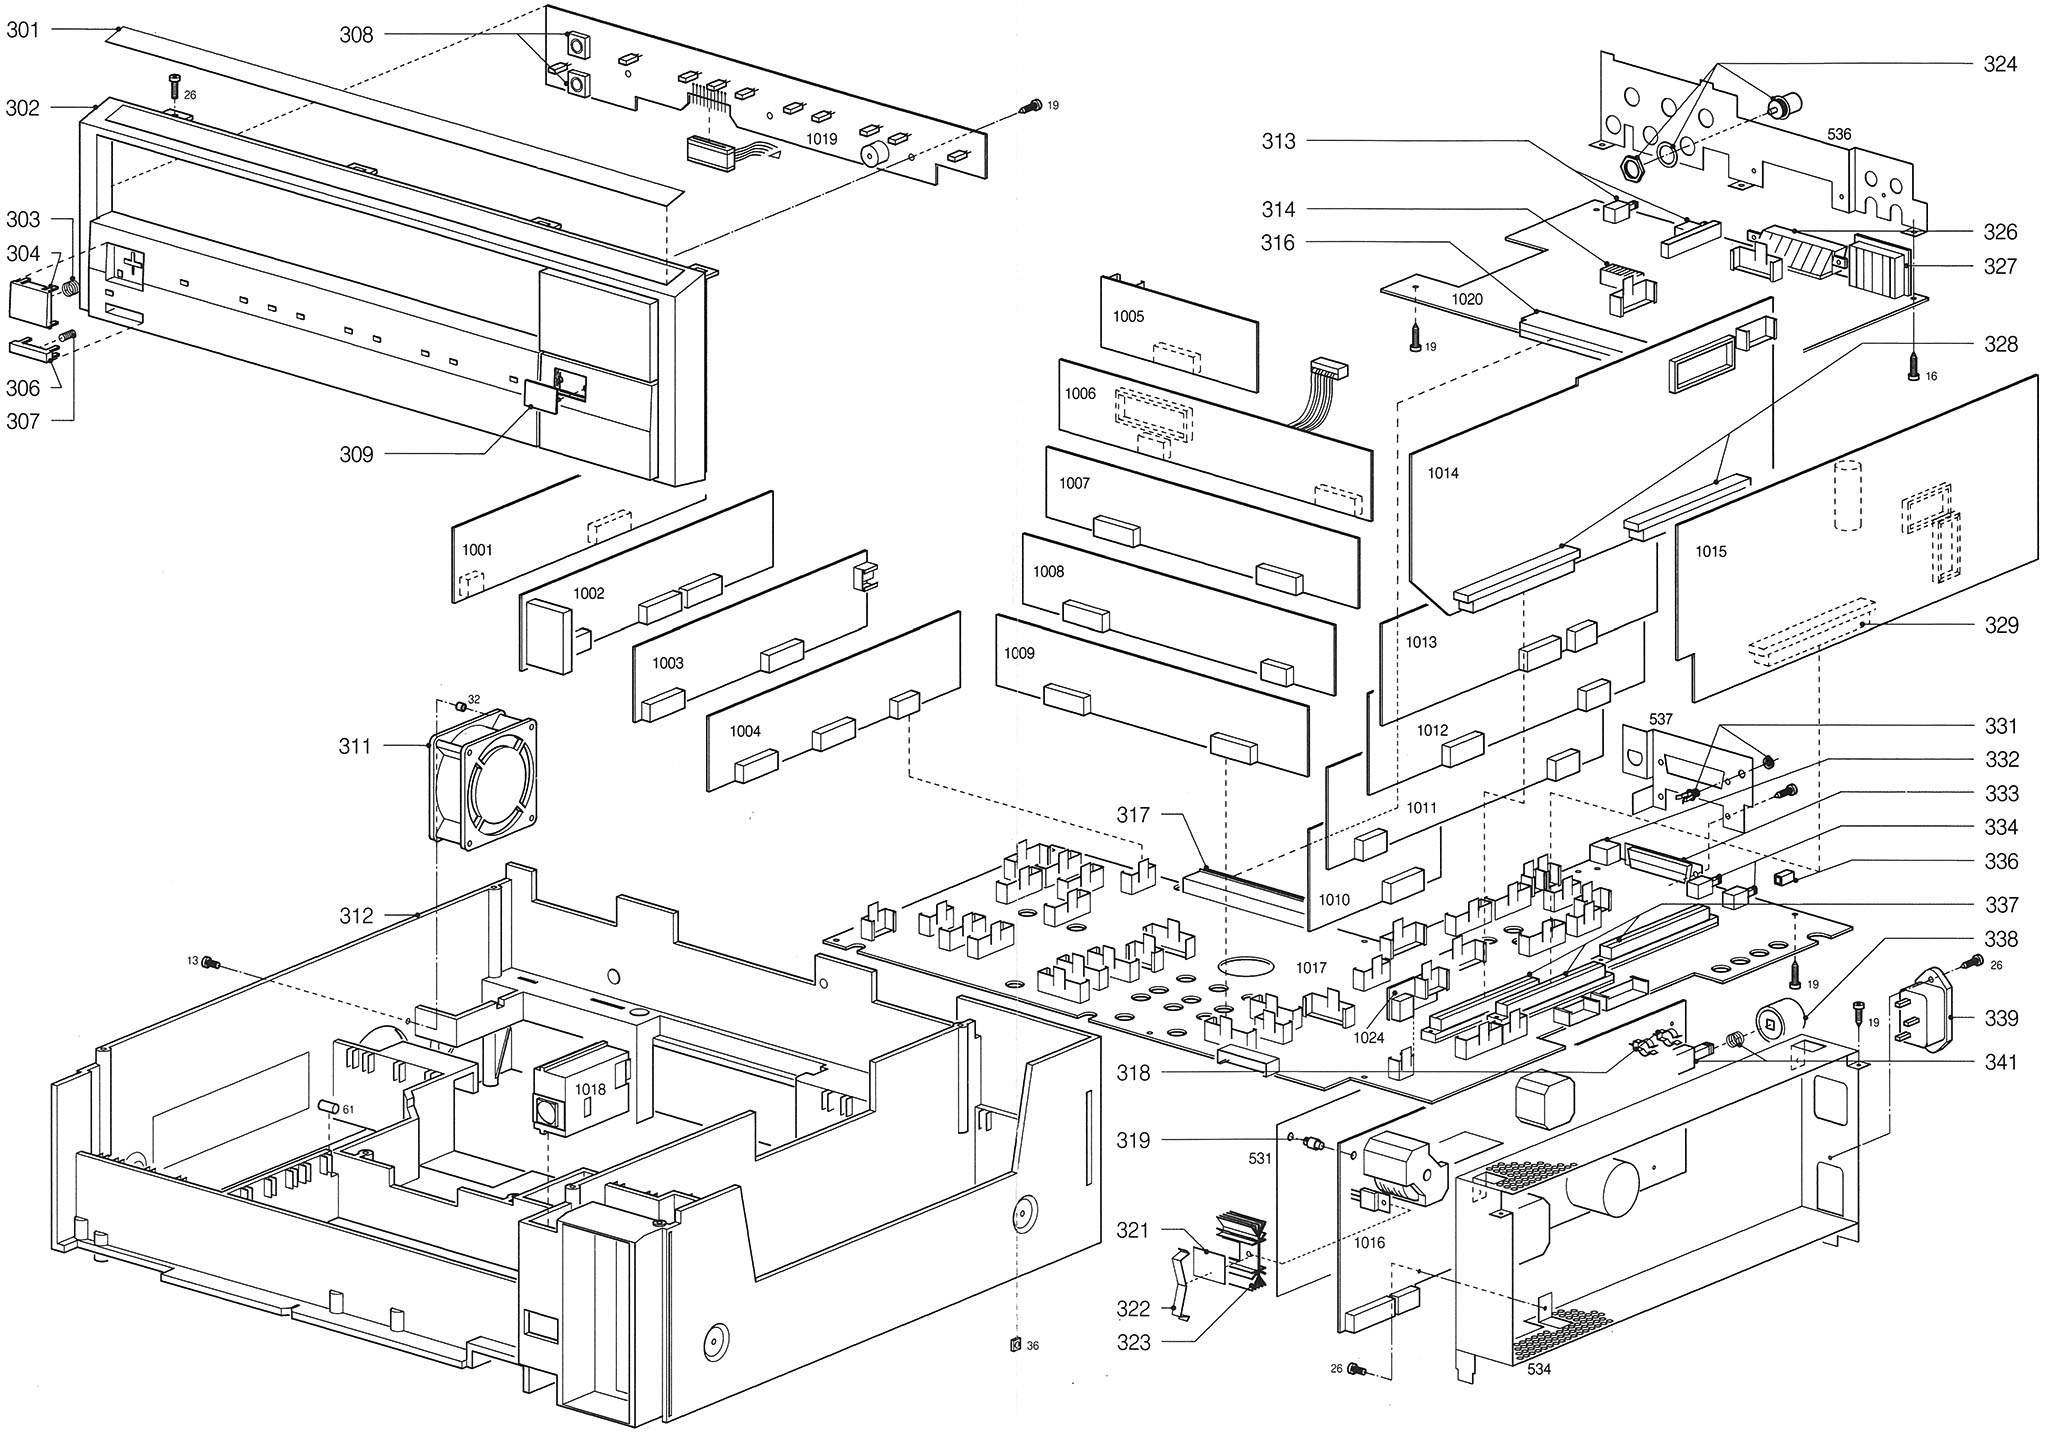 Philips VP415 – Disassembly Guide